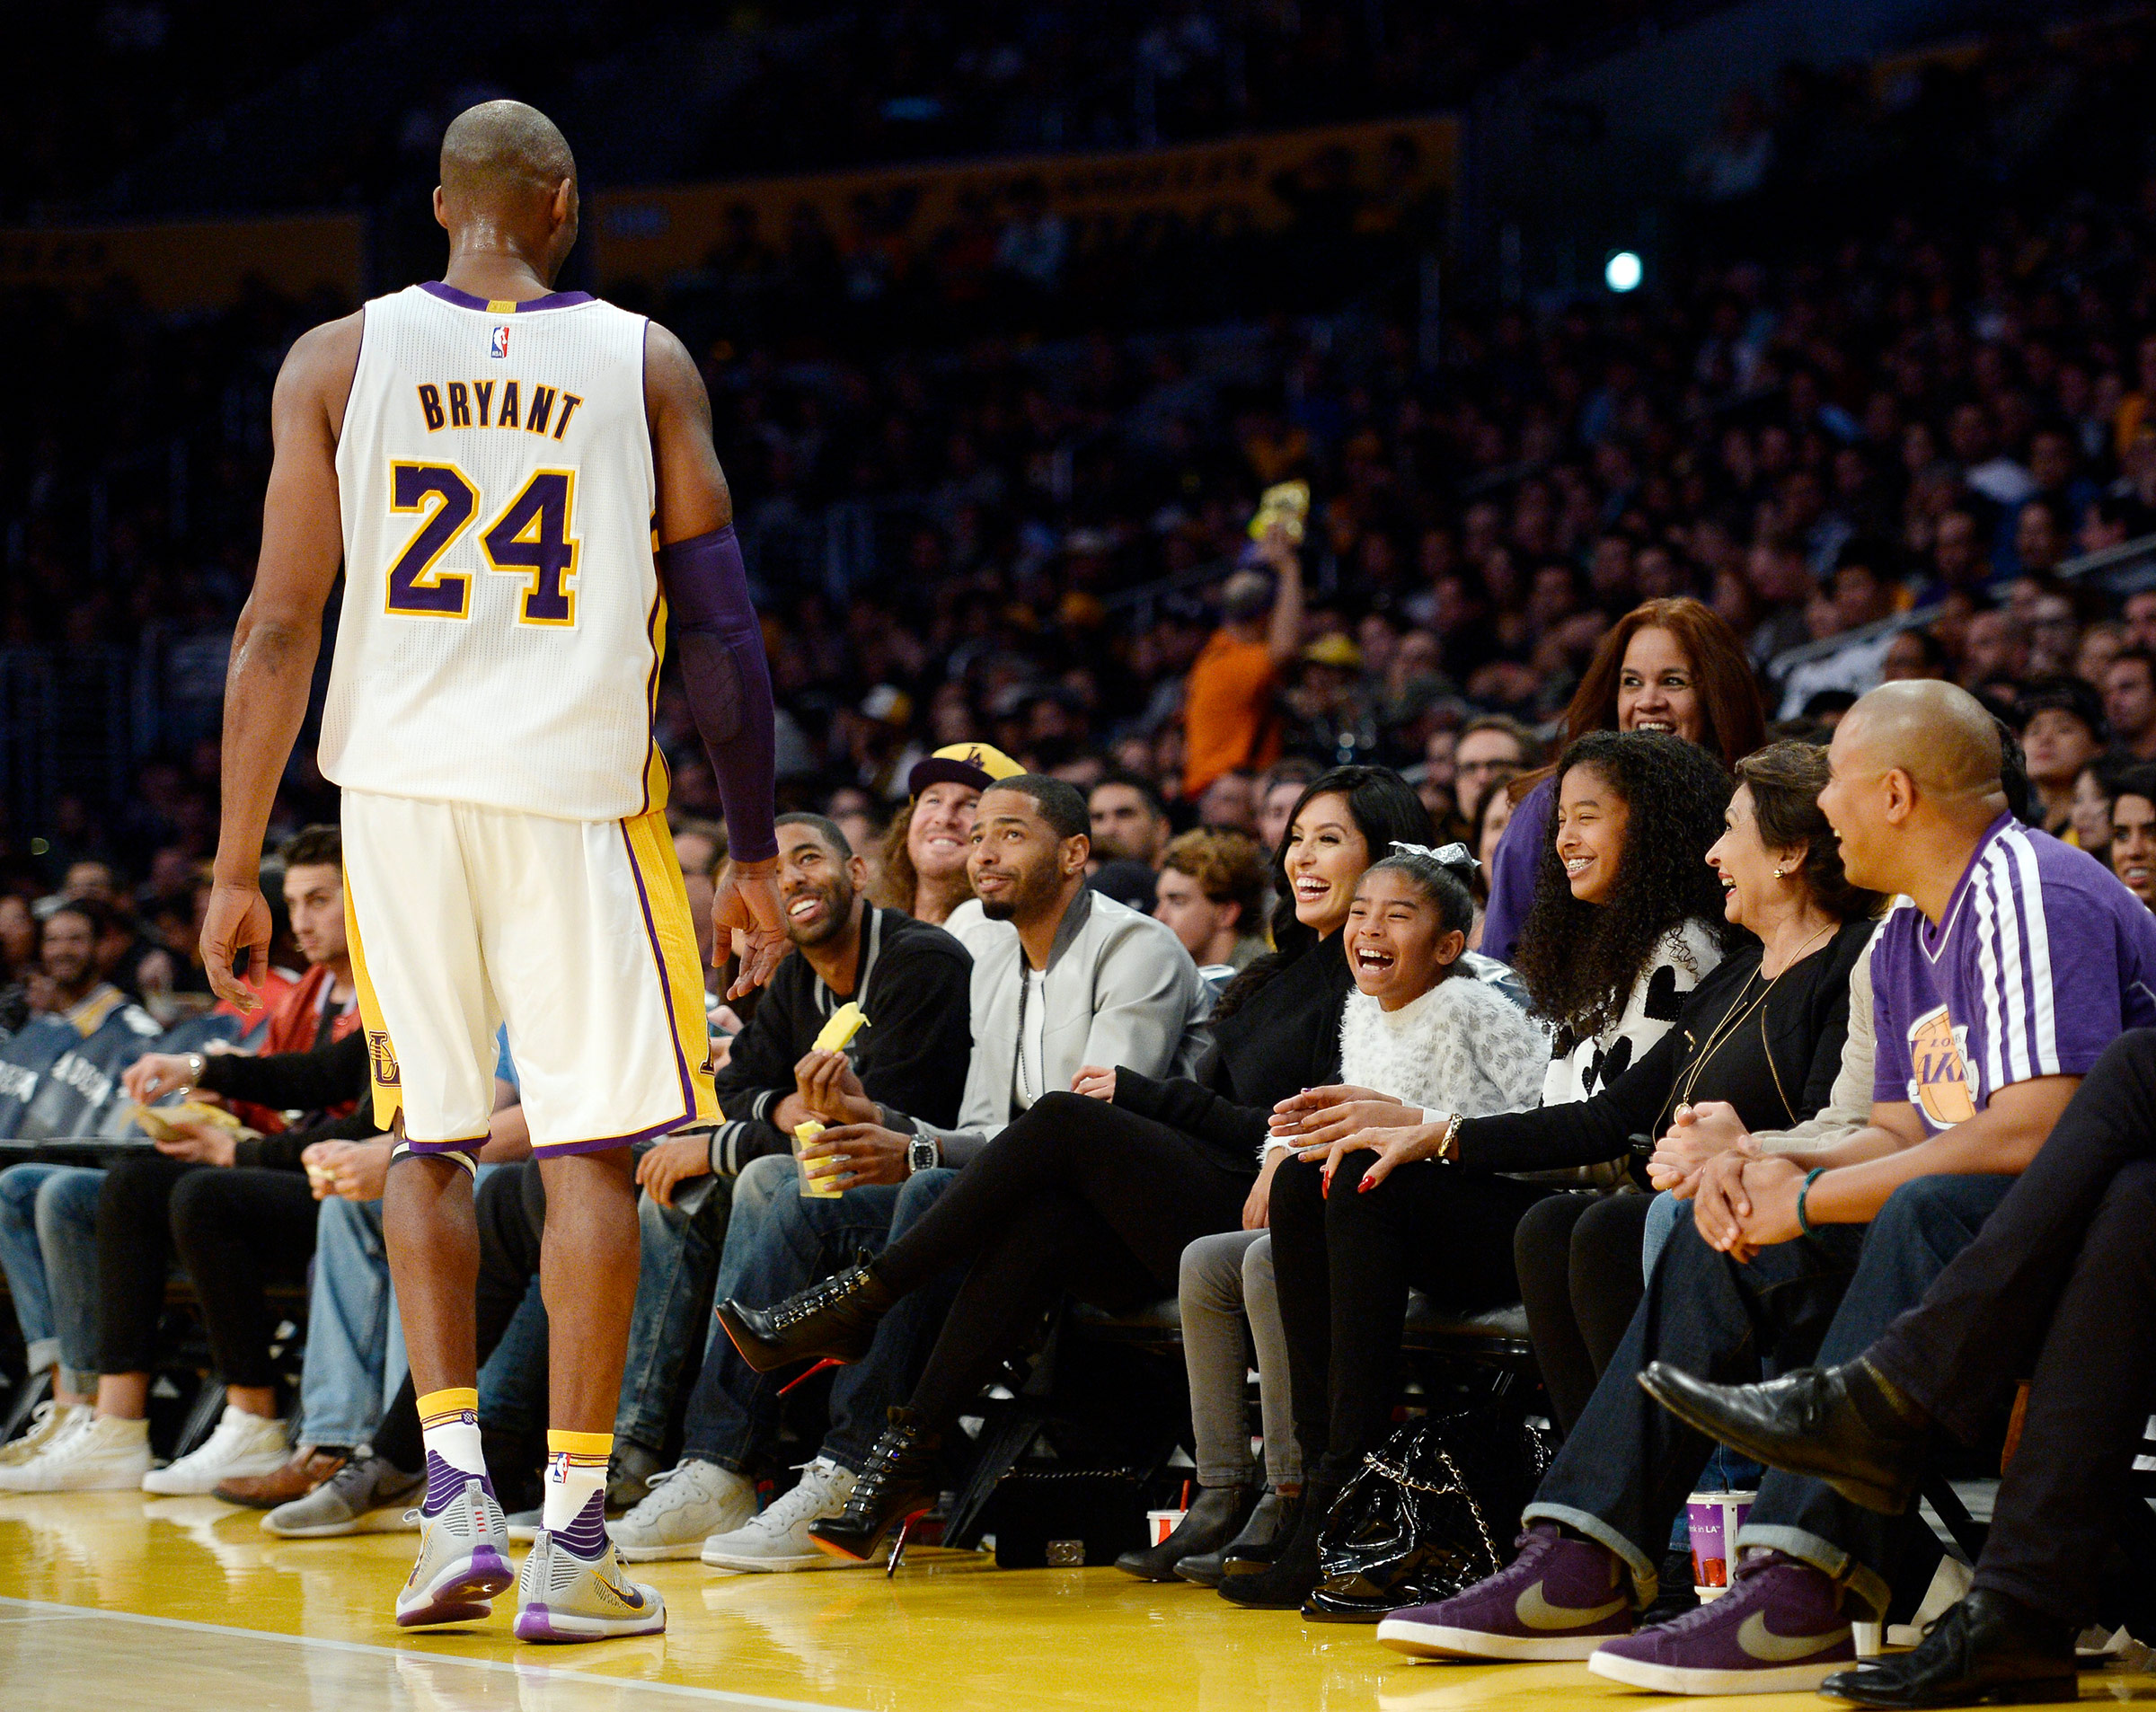 Kobe Bryant of the Los Angeles Lakers speaks with his daughters Gianna, 8, Natalia, 12, and wife Vanessa during the basketball game against the Indiana Pacersin Los Angeles, on Nov. 29, 2015